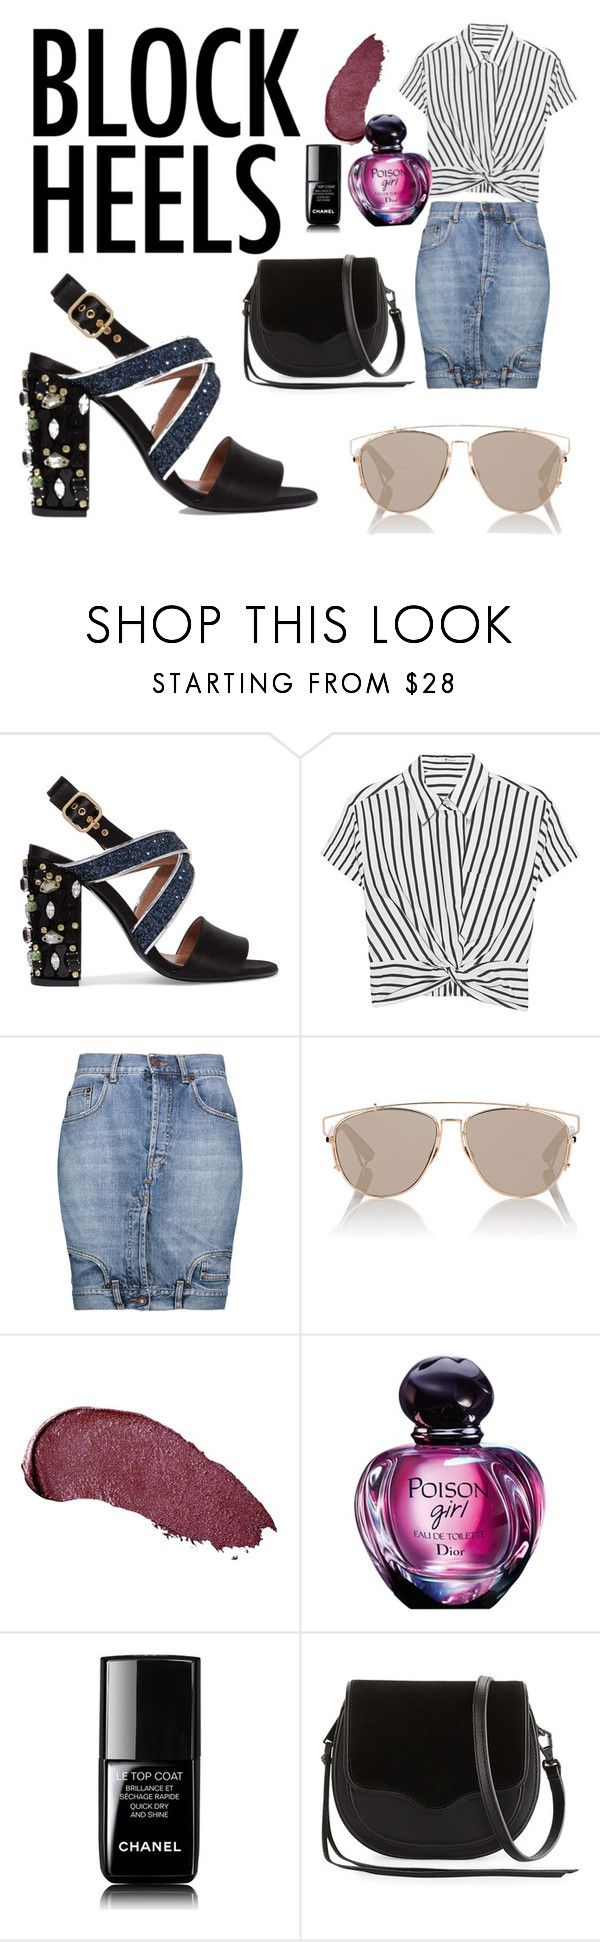 """""""Night out"""" by laurenhaugen ❤ liked on Polyvore featuring Marni, T By Alexander Wang, Moschino, Christian Dior, Kat Von D, Chanel and Rebecca Minkoff"""